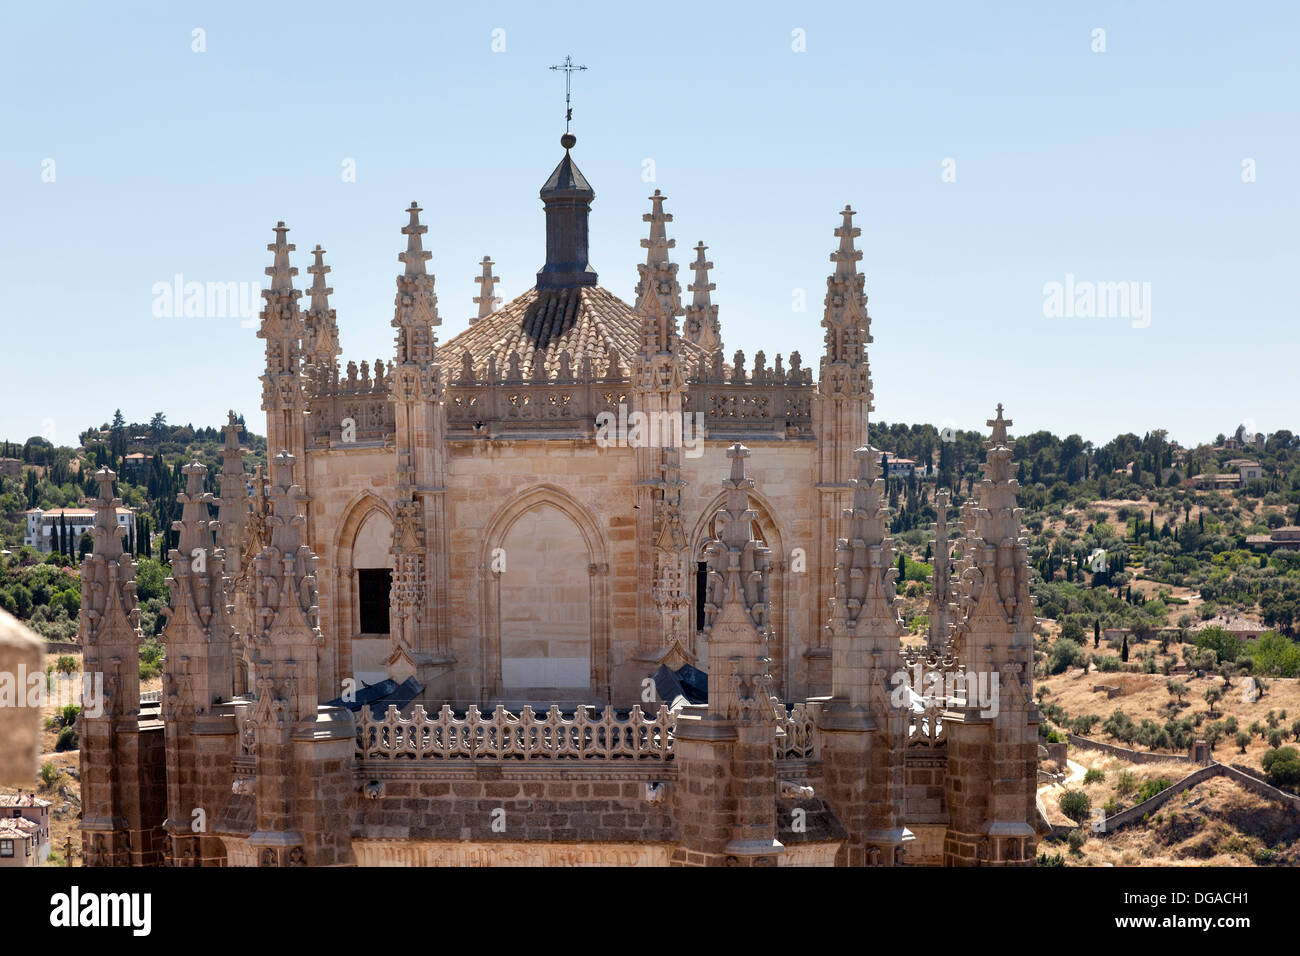 Monastery of San Juan de los Reyes in Toledo, Spain - Stock Image